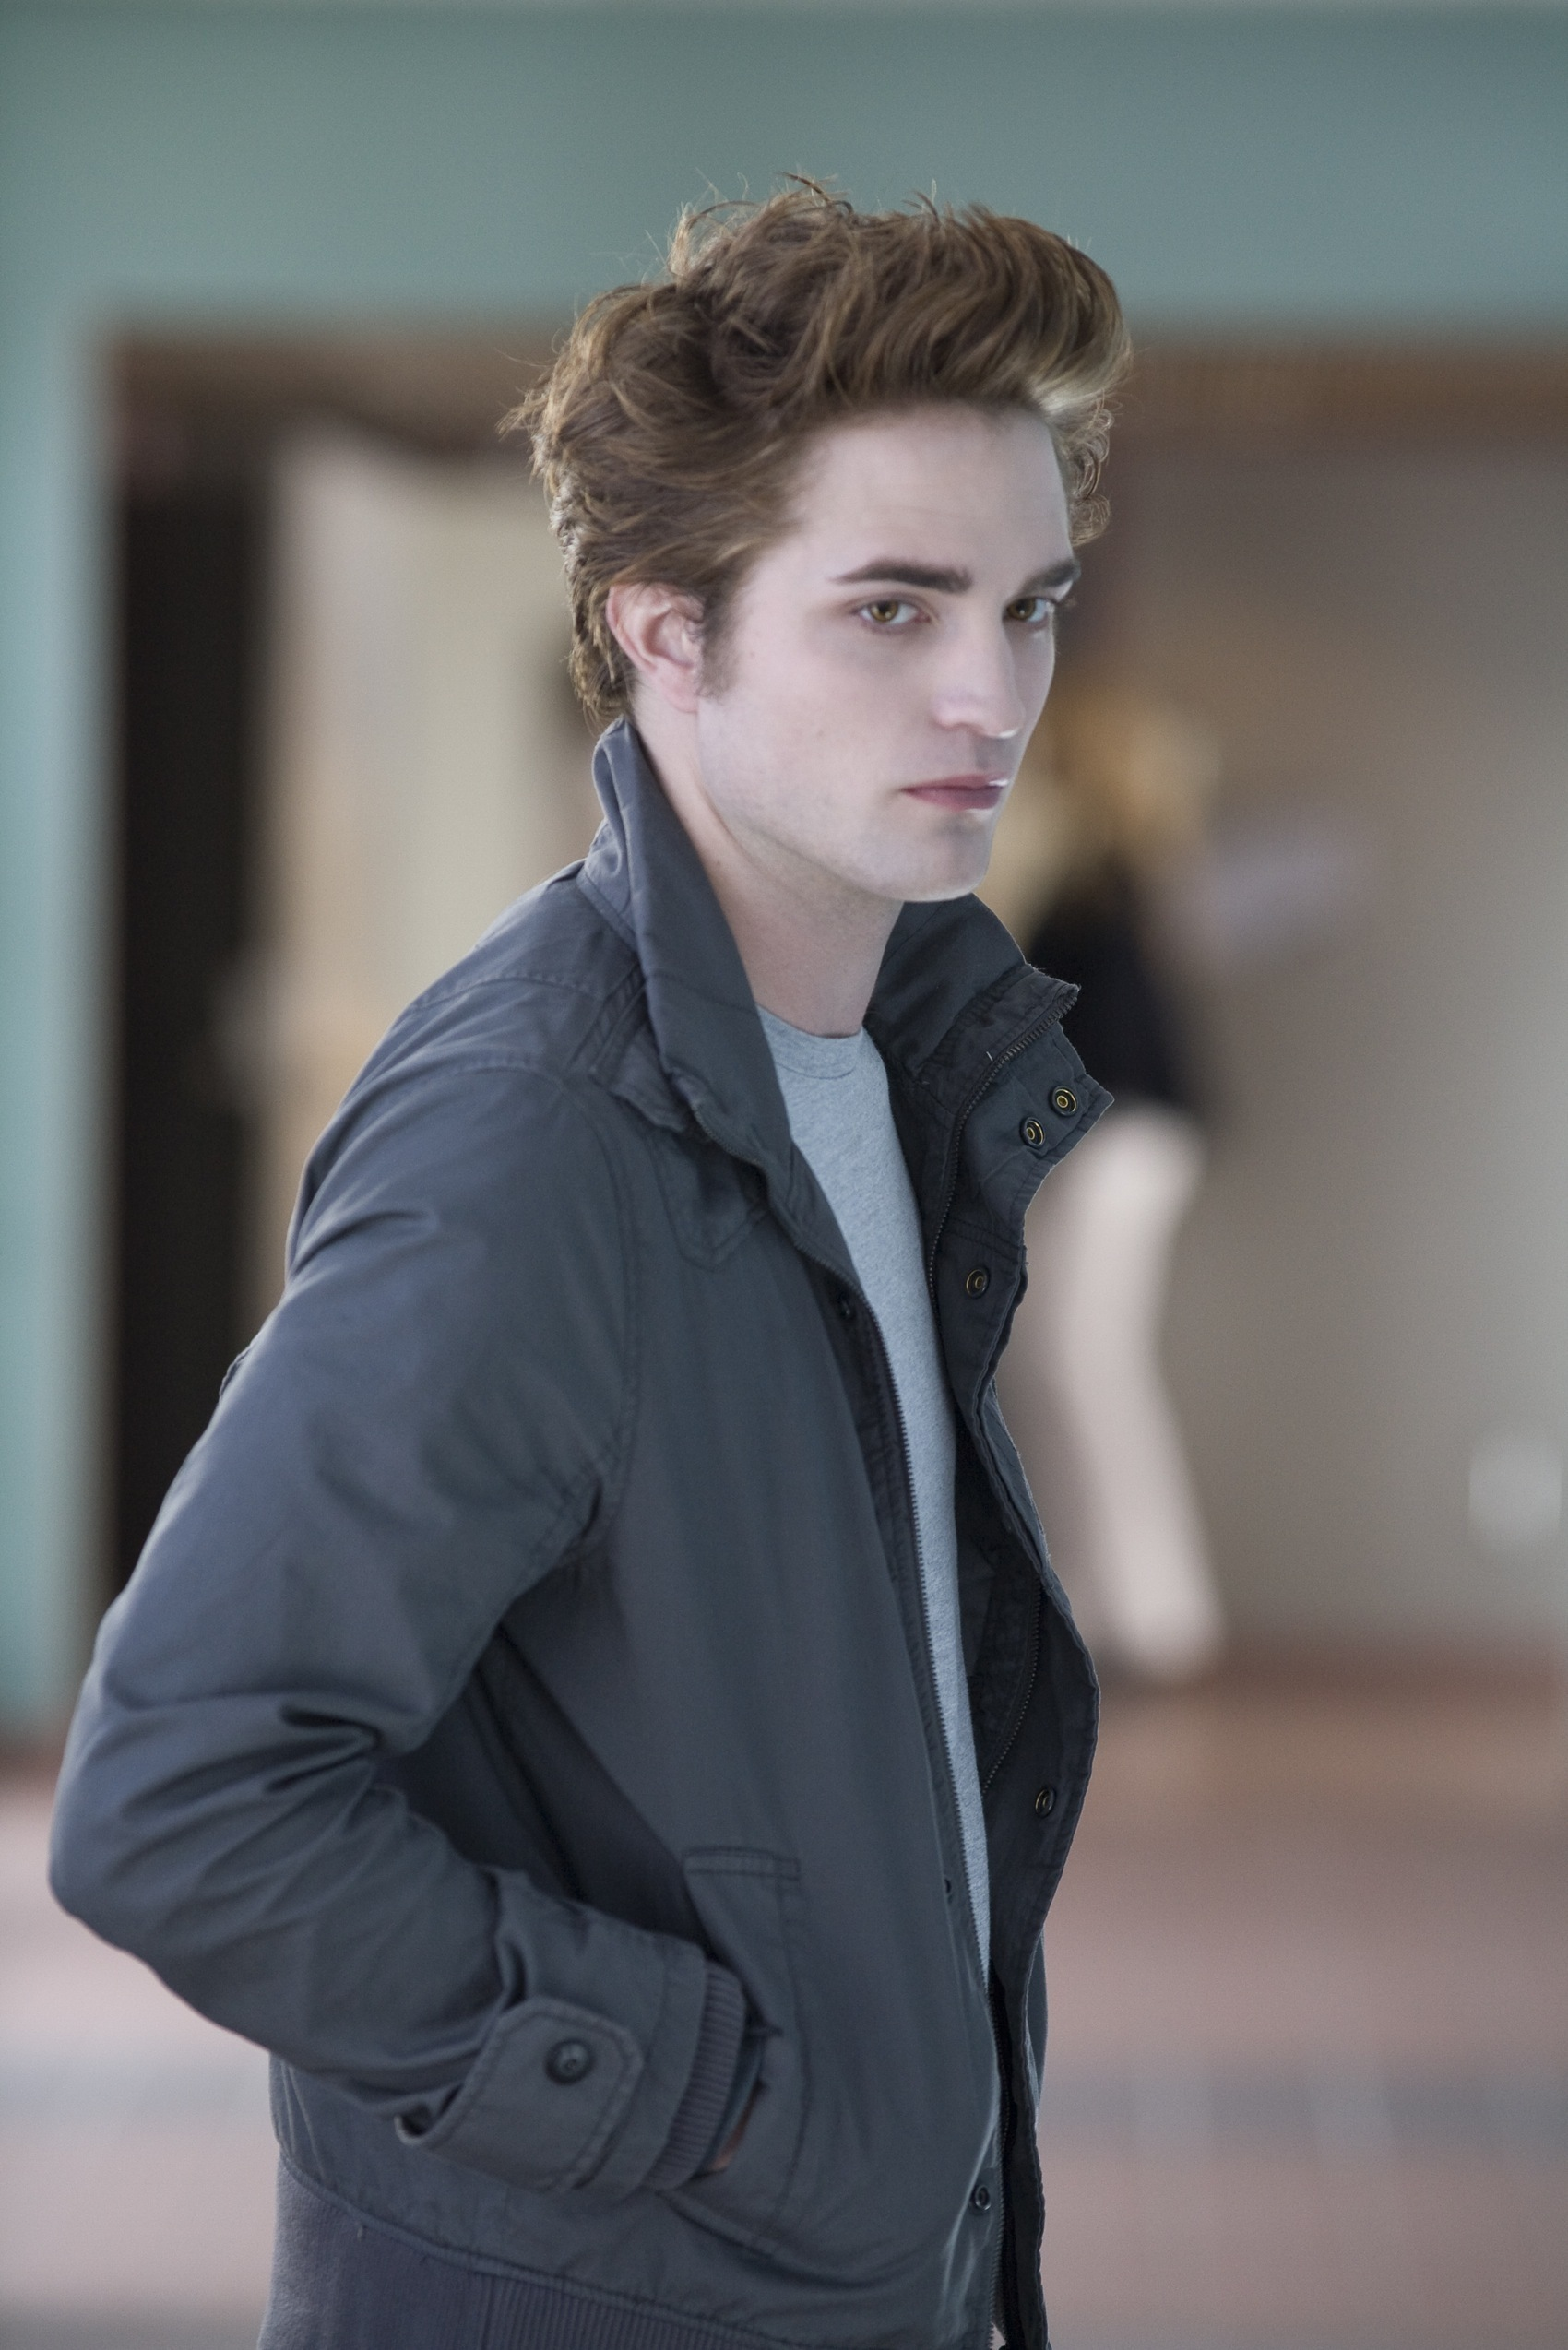 Edward Stills HQ - Edward Cullen Photo (3379520) - Fanpop